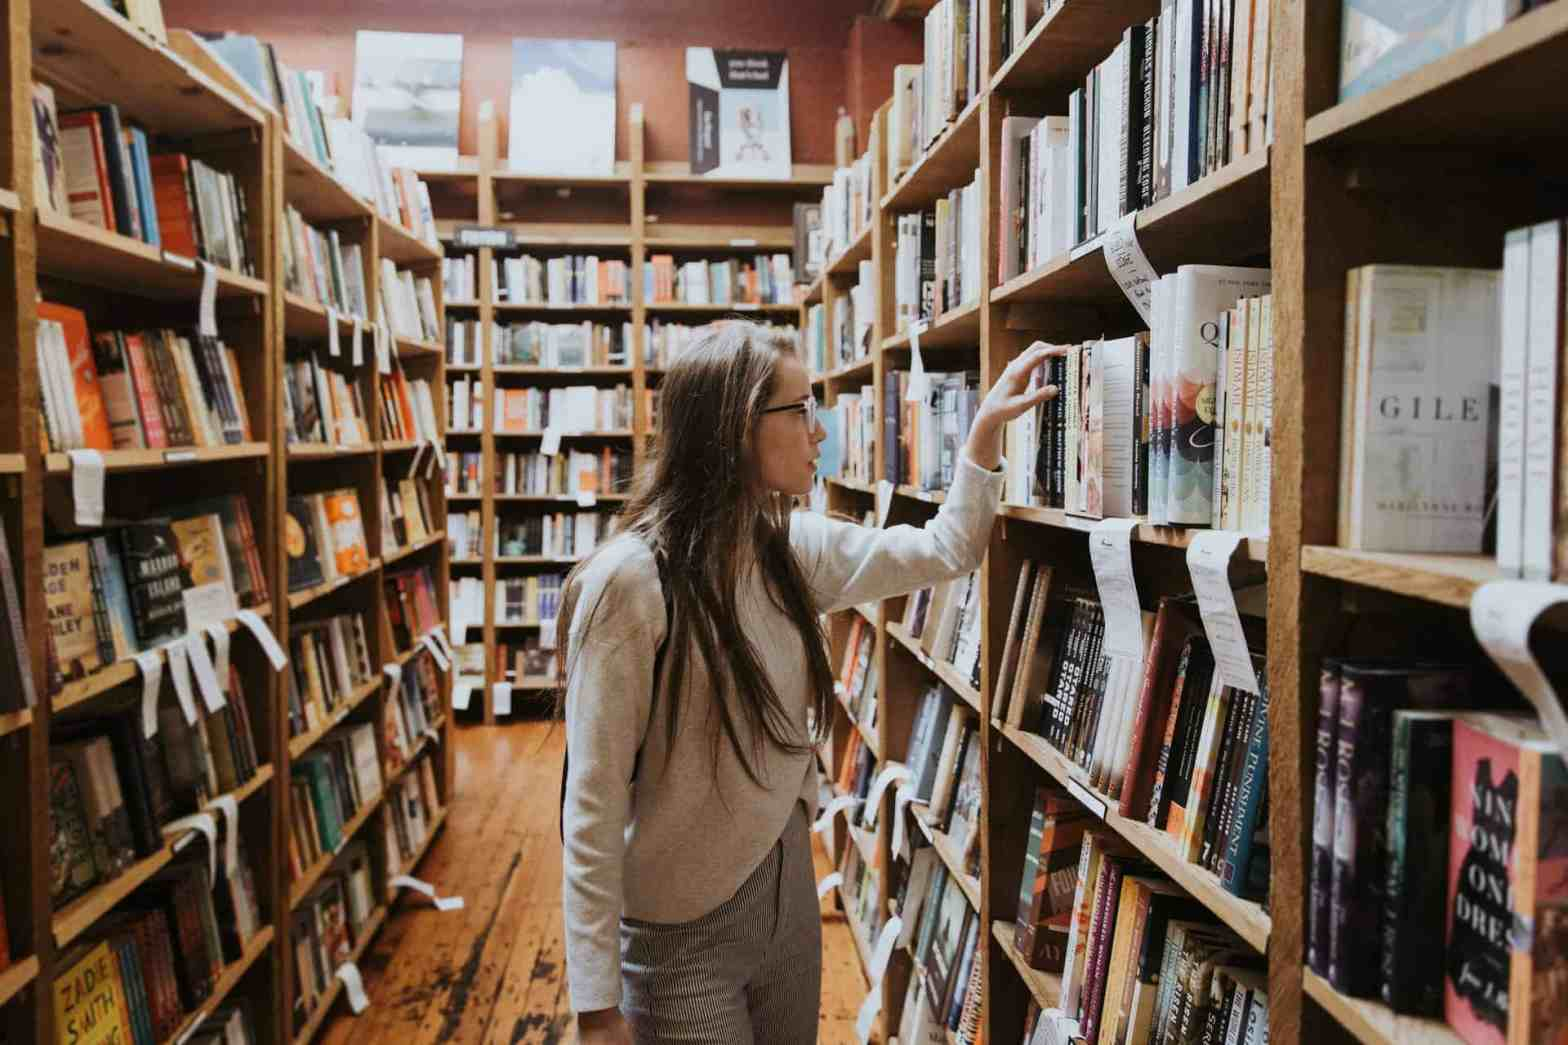 Girl-in-a-library-look-for-books-to-find-purpose-in-life